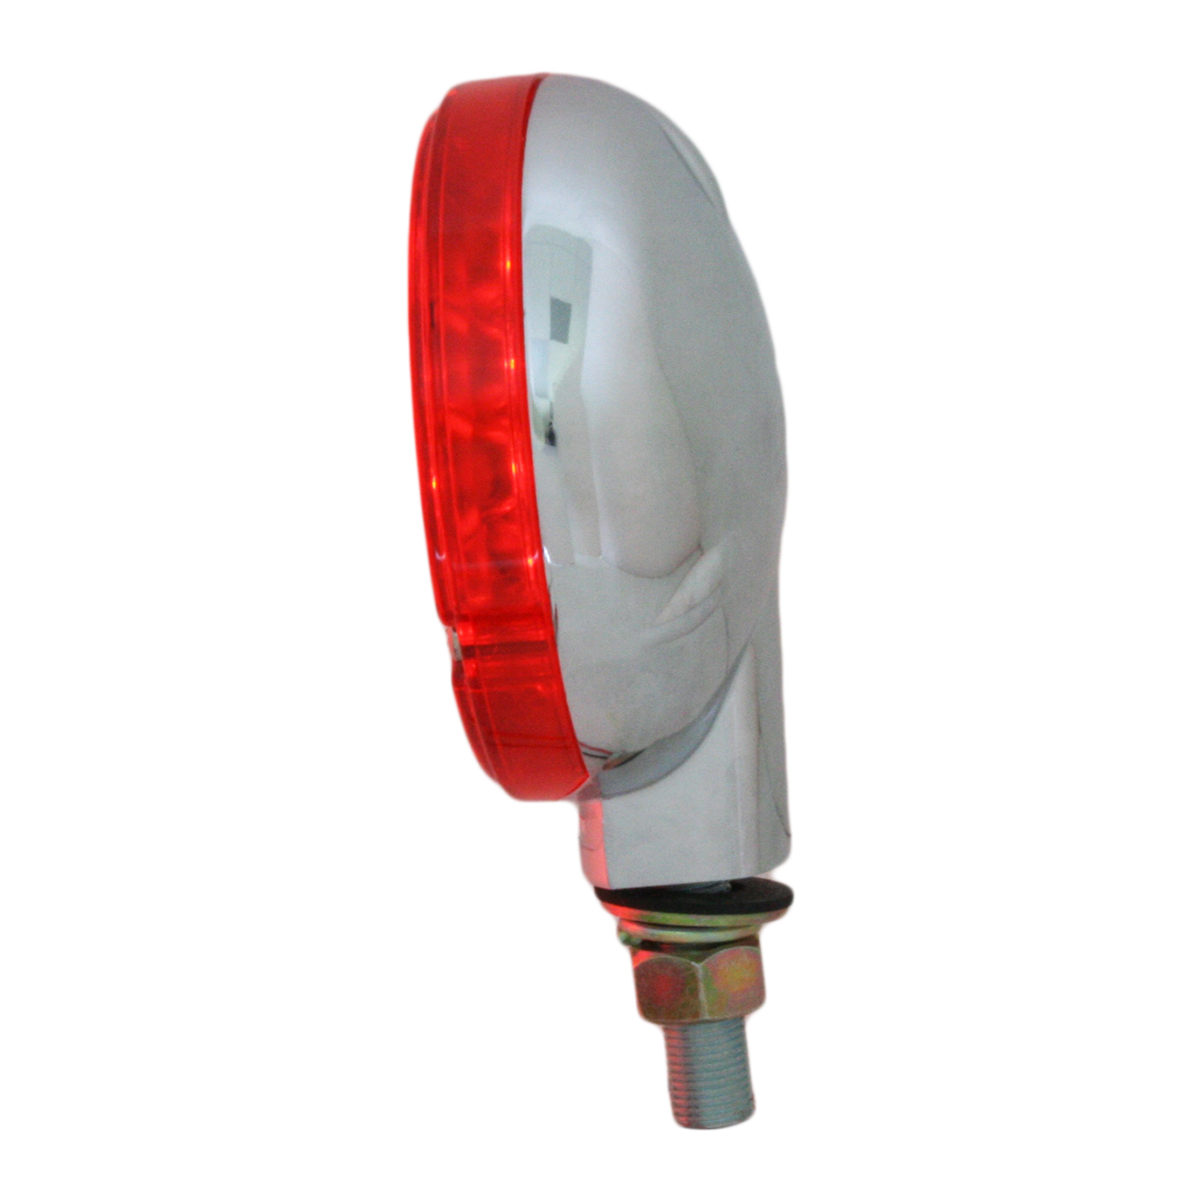 "78353 4"" Single Face Pearl LED Pedestal Light in Red/Red"